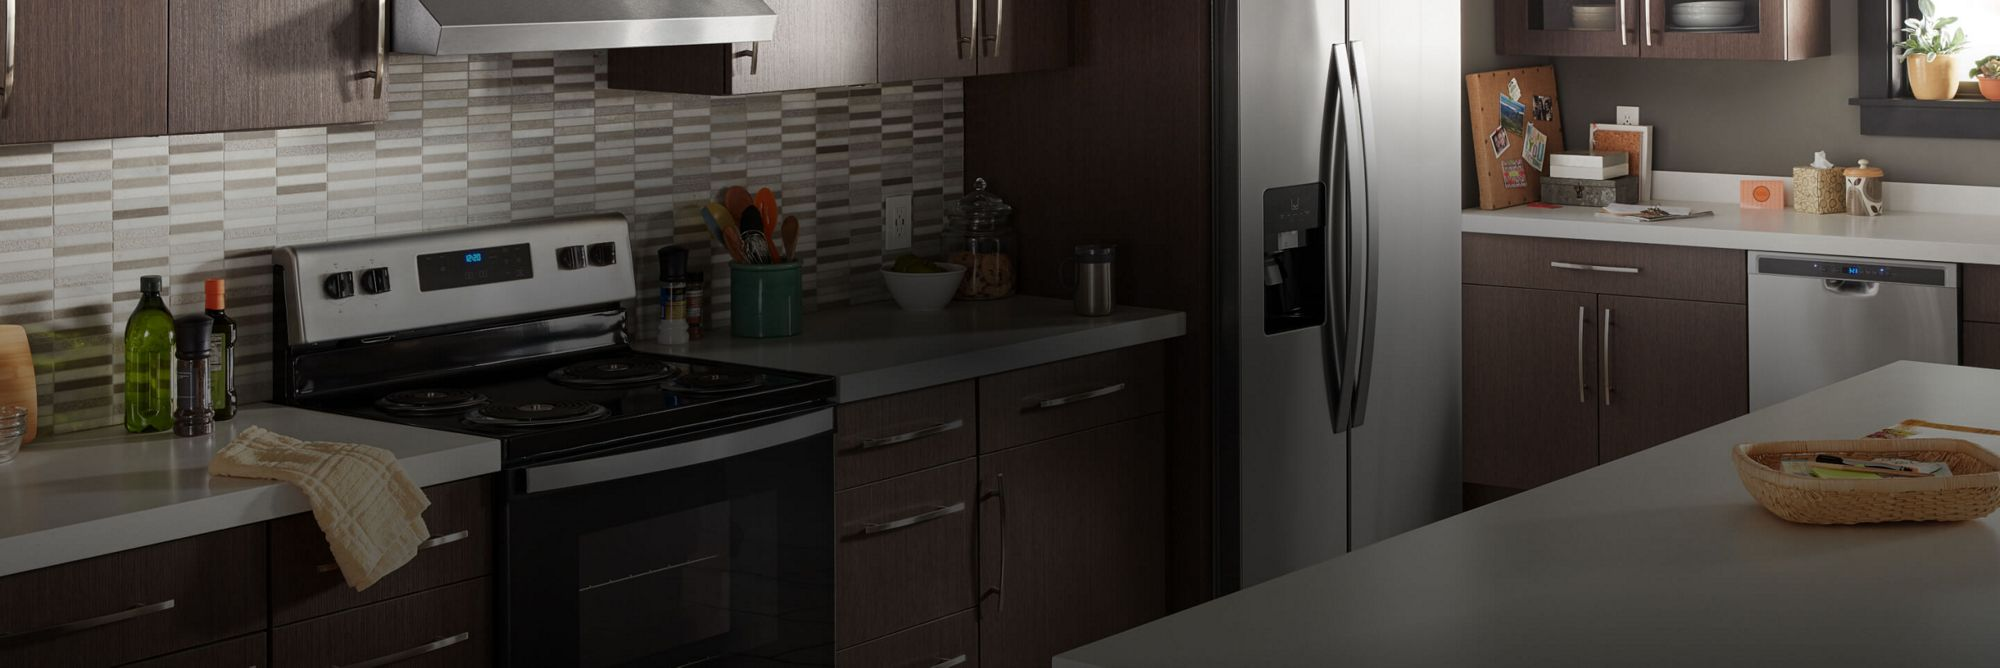 Whirlpool® kitchen suite featuring an electric range and side-by-side refrigerator.